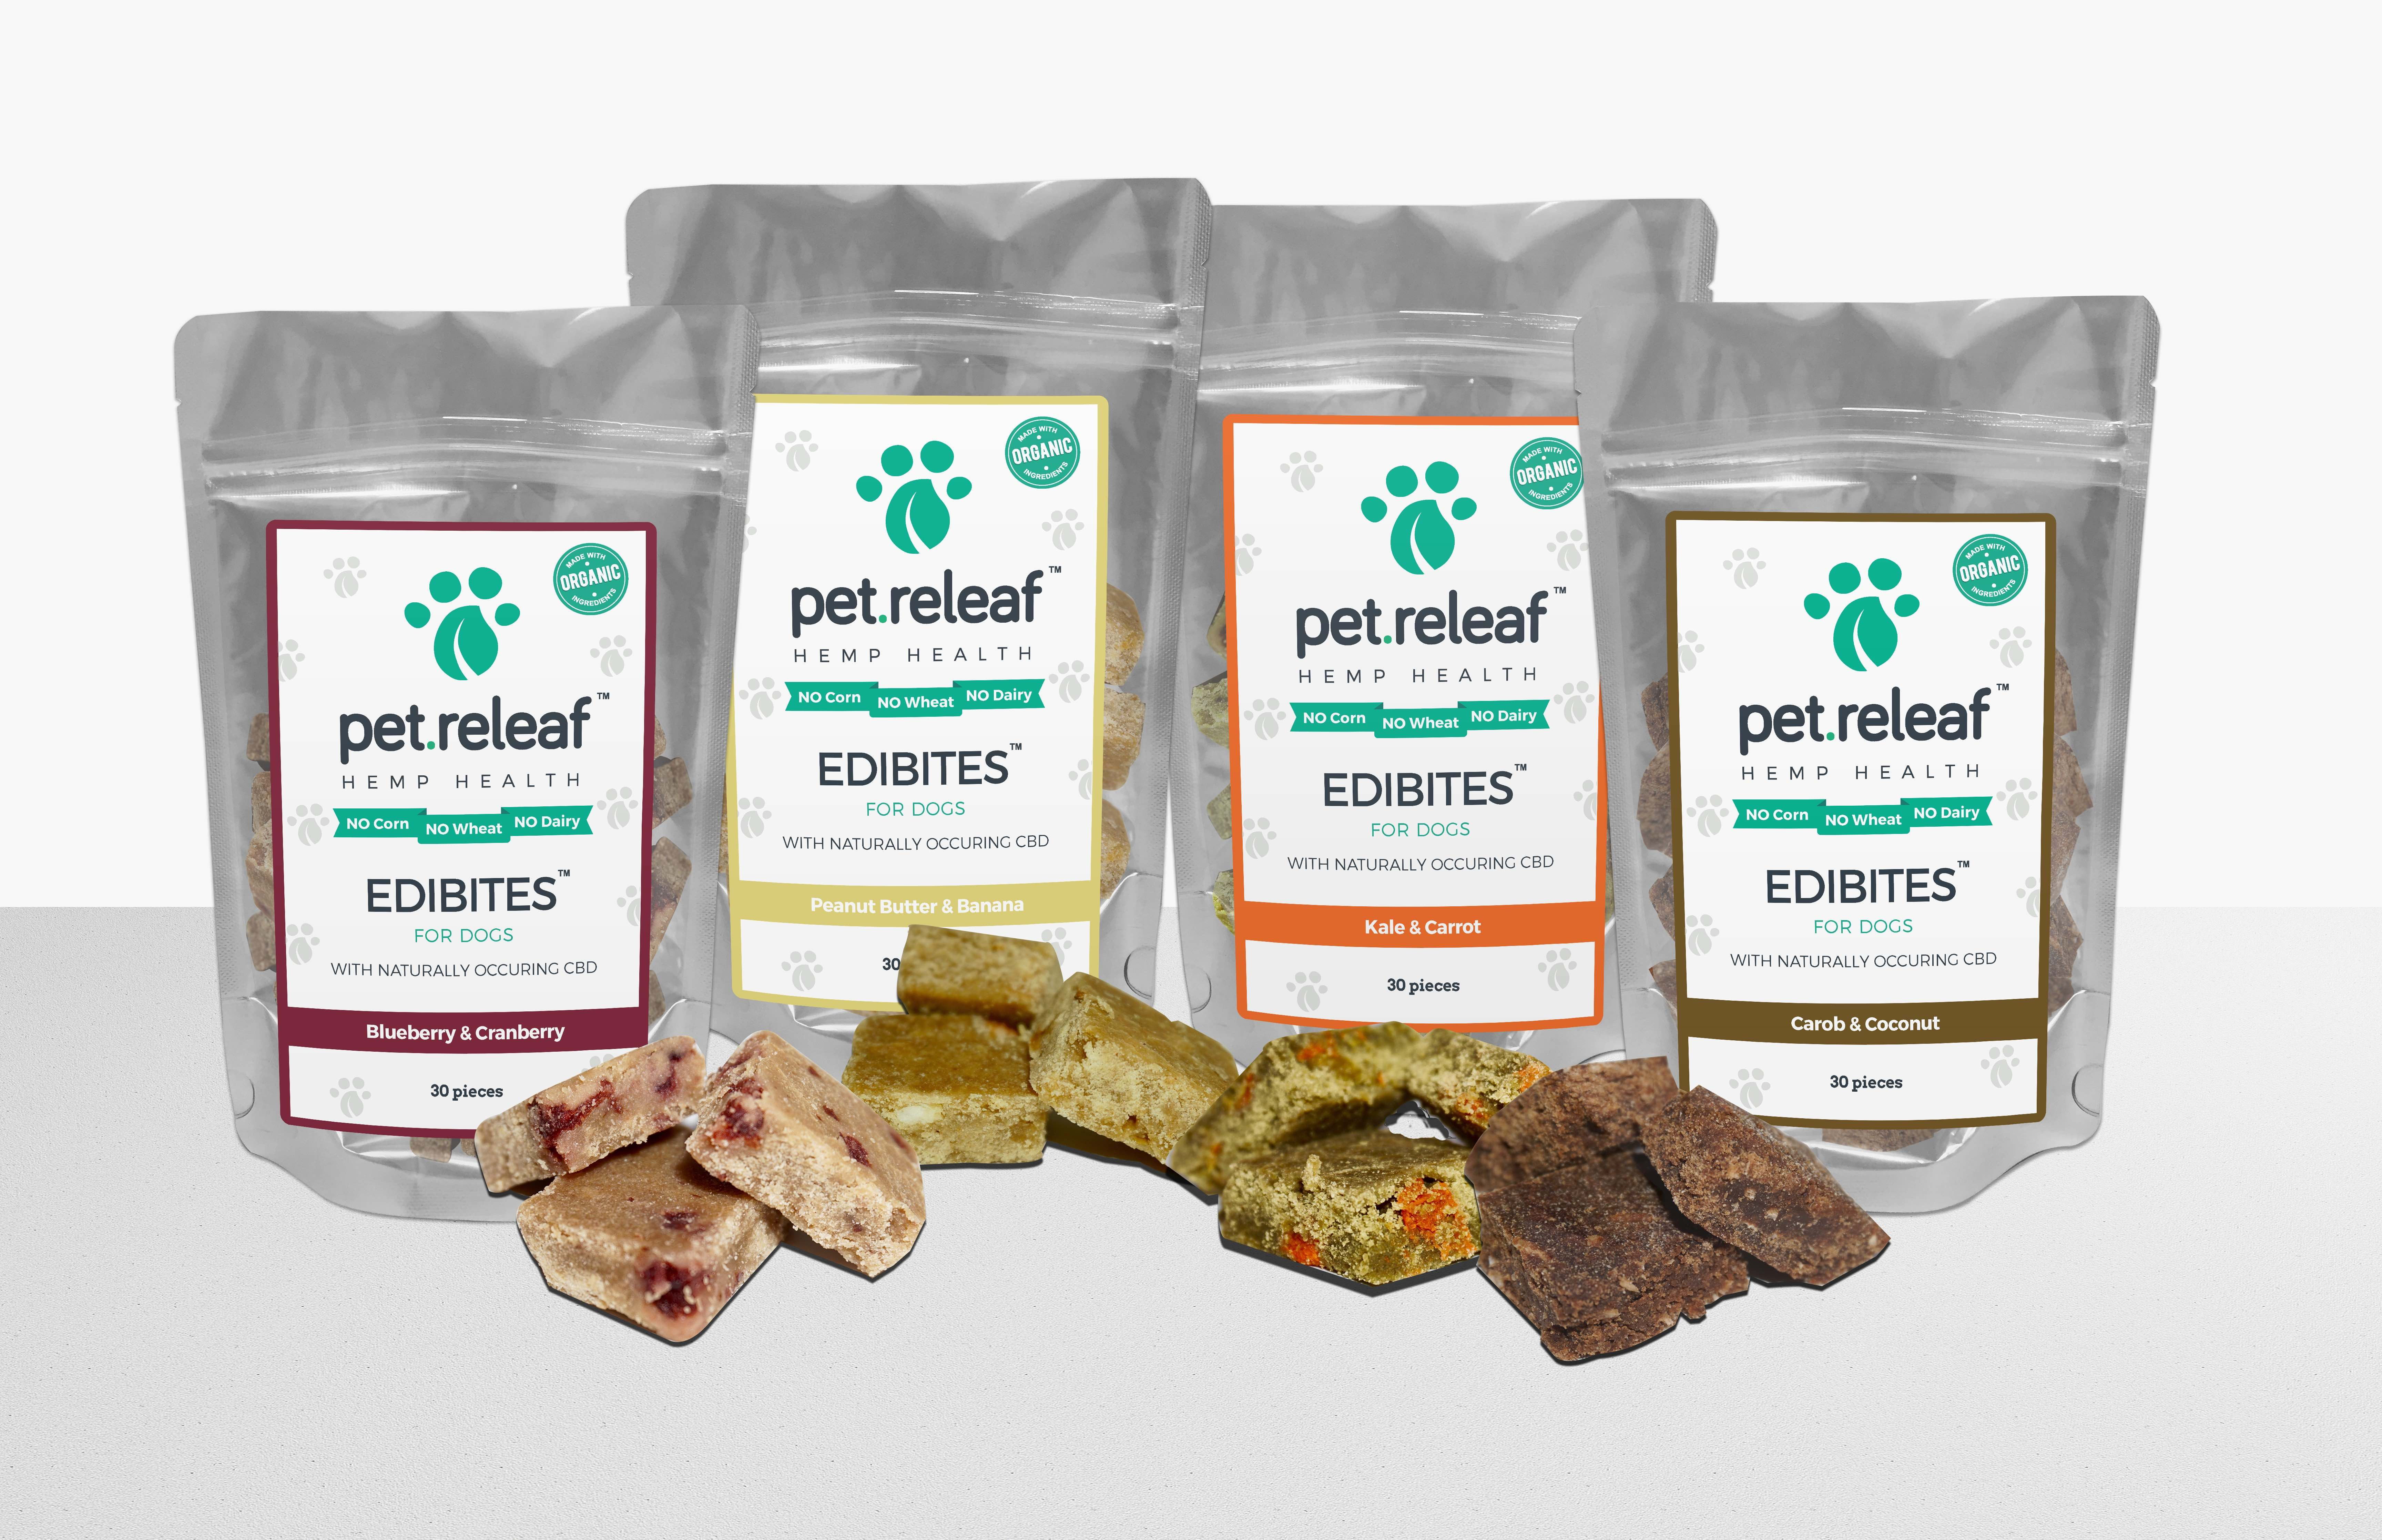 Pet Releaf Edibites for dogs are infused with Organic CBD